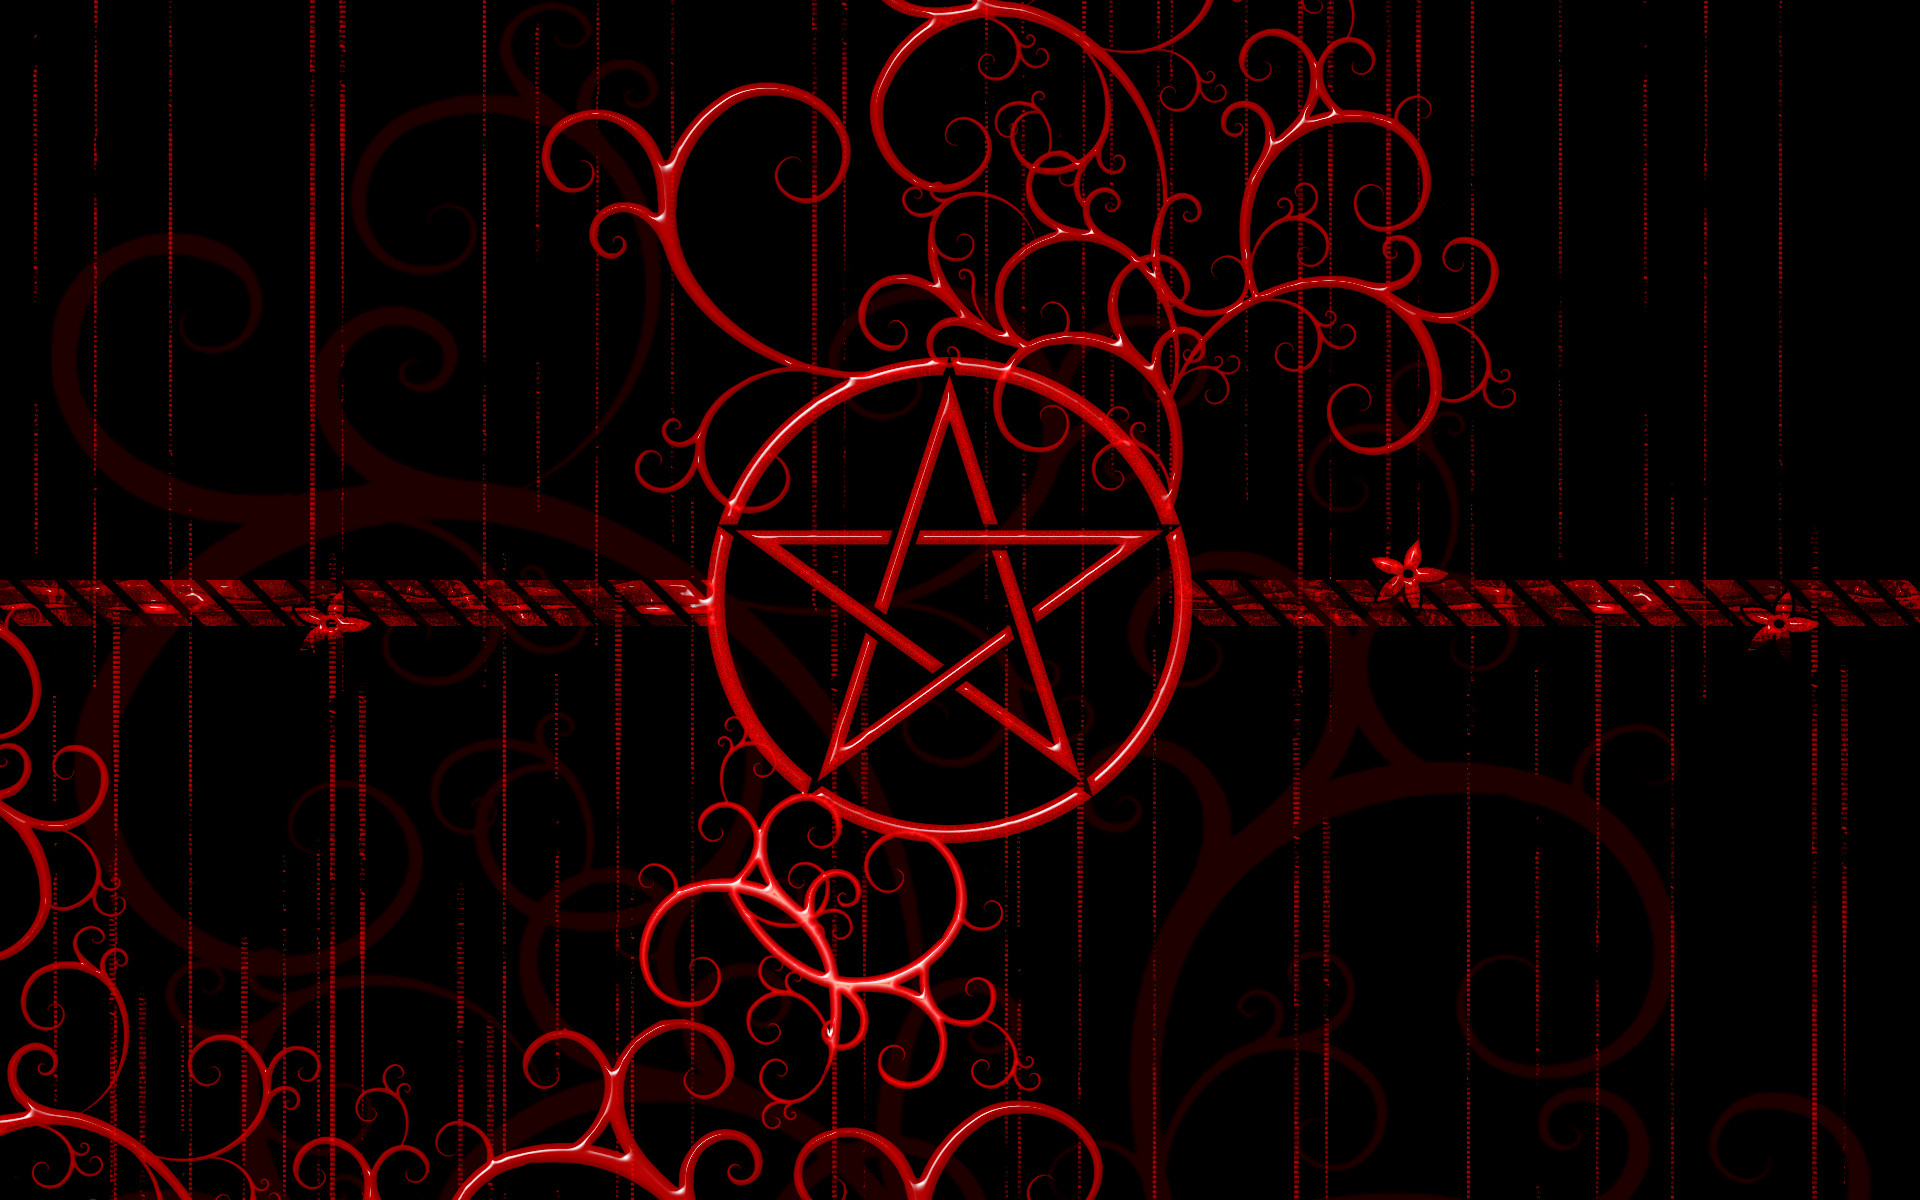 Devil Symbol 324091 Hd Wallpaper Backgrounds Download